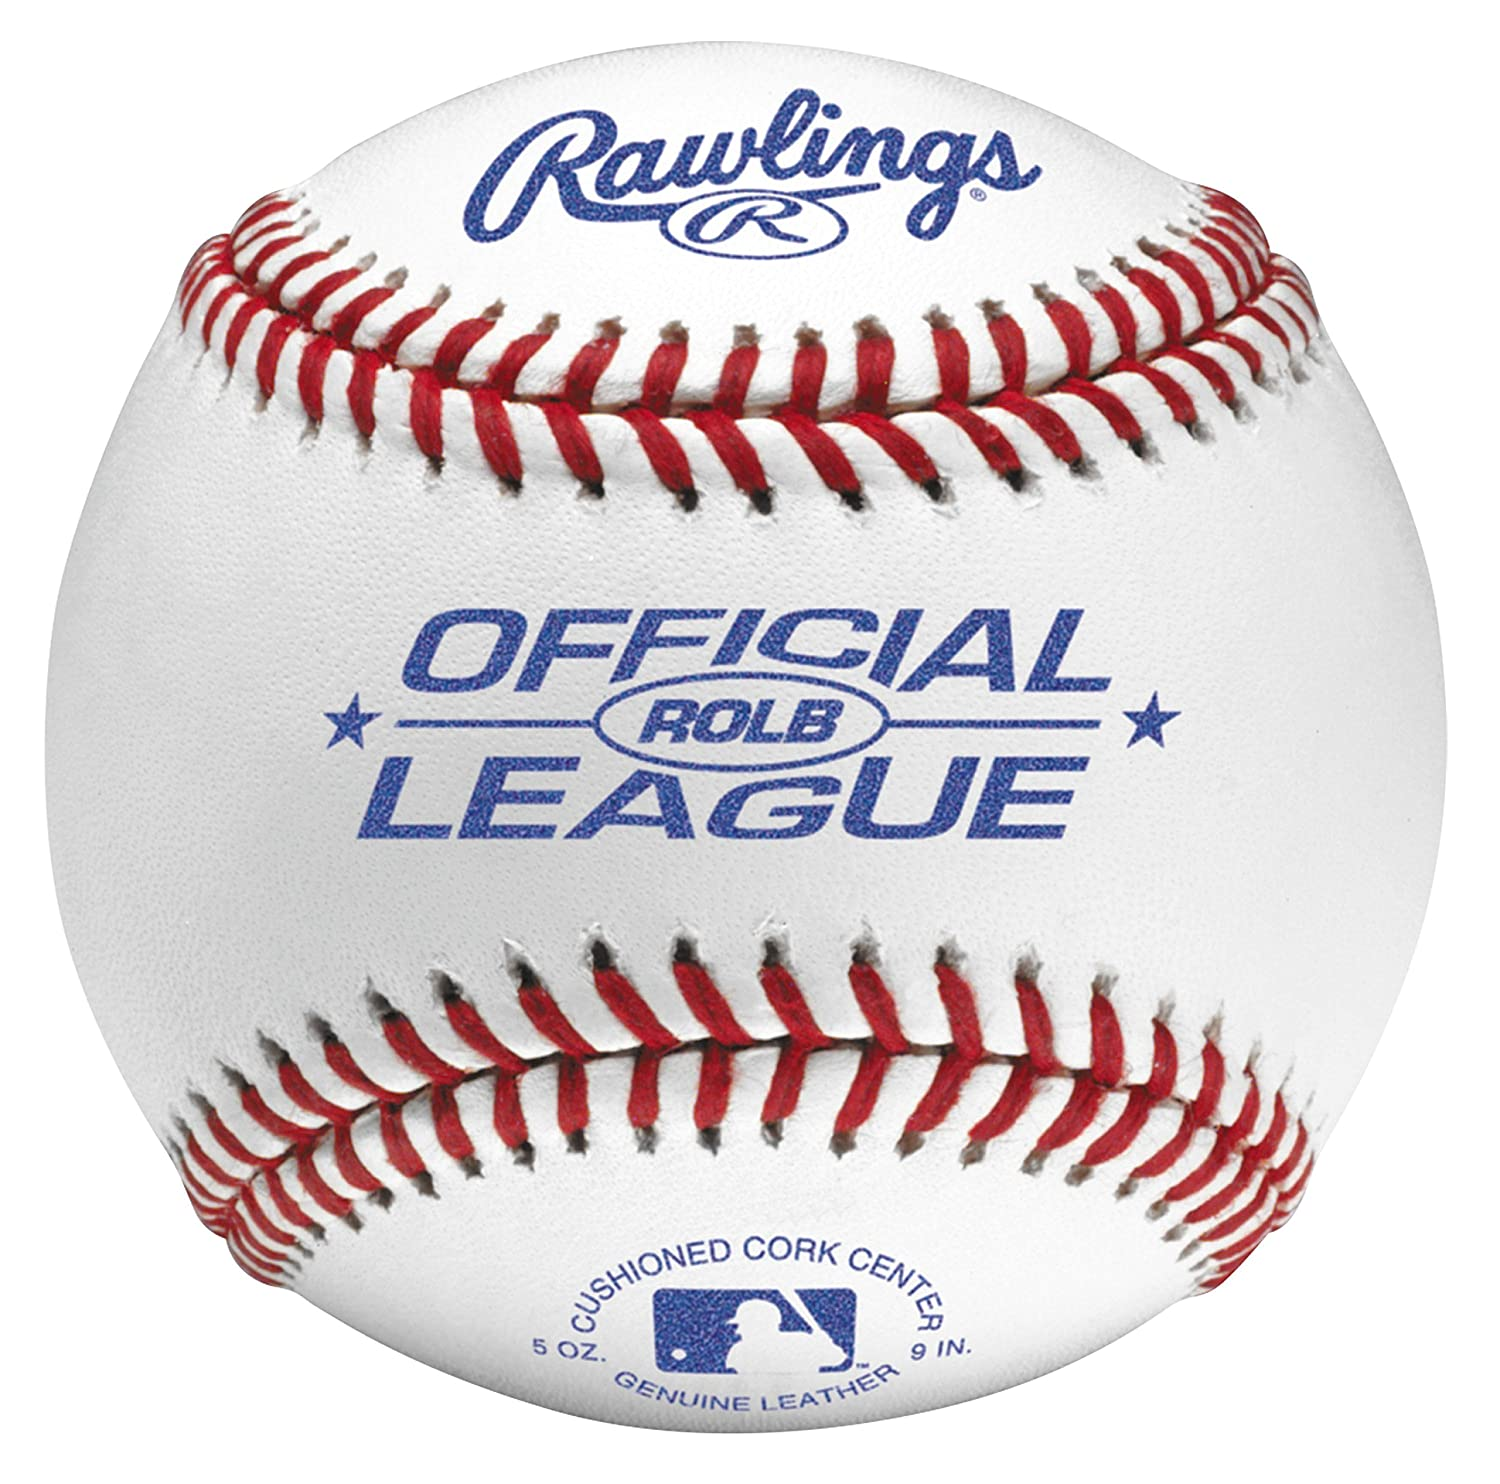 Rawlings ROLB Official League Baseball 03428